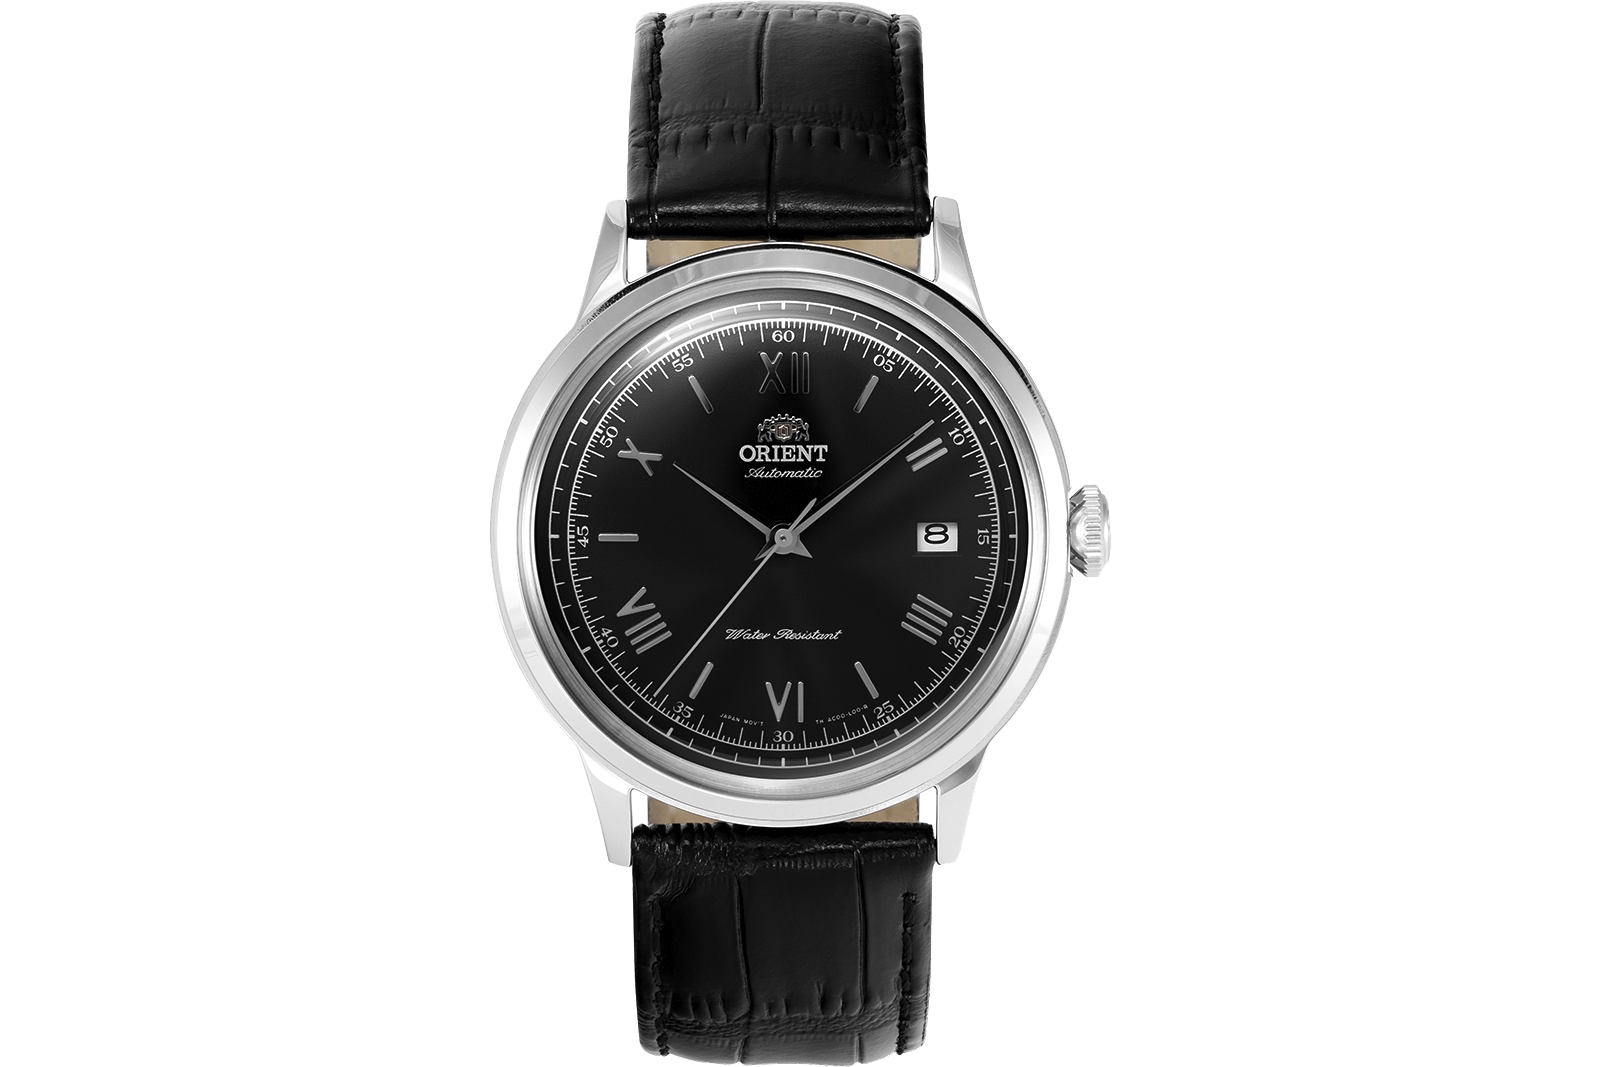 Orient 2nd Generation AC00 Version 2 Classic Watch   FAC0000AB0